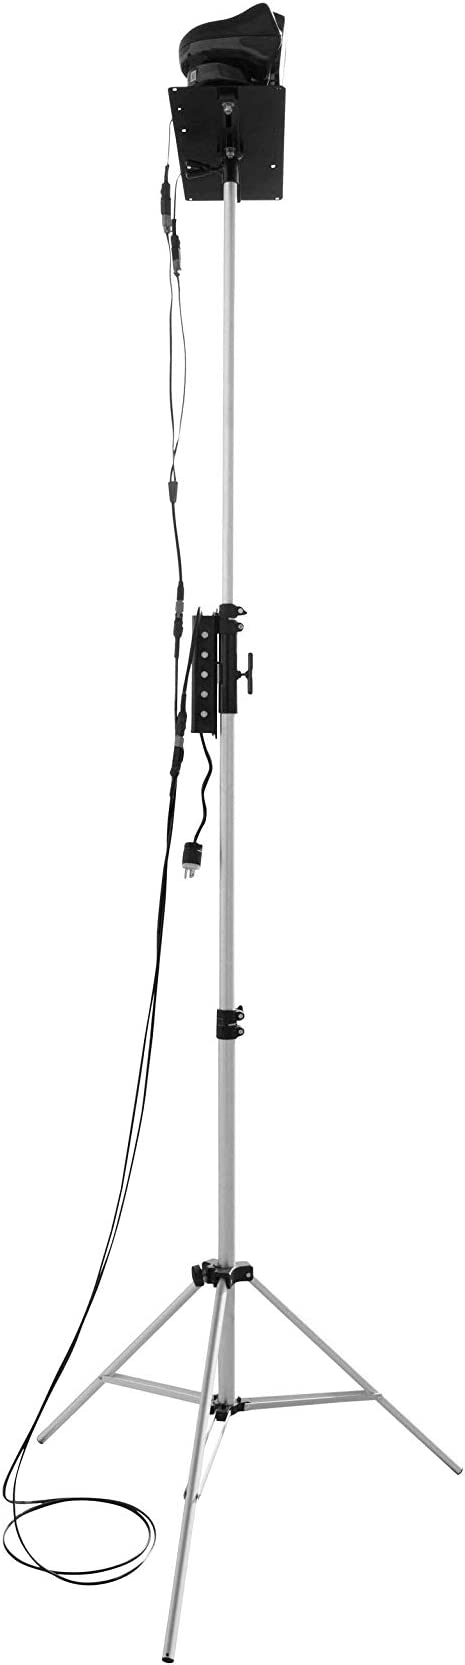 Extends 3.5 to 120-277VAC Portable Telescoping LED Light Tower Dual Remote Control Spotlights